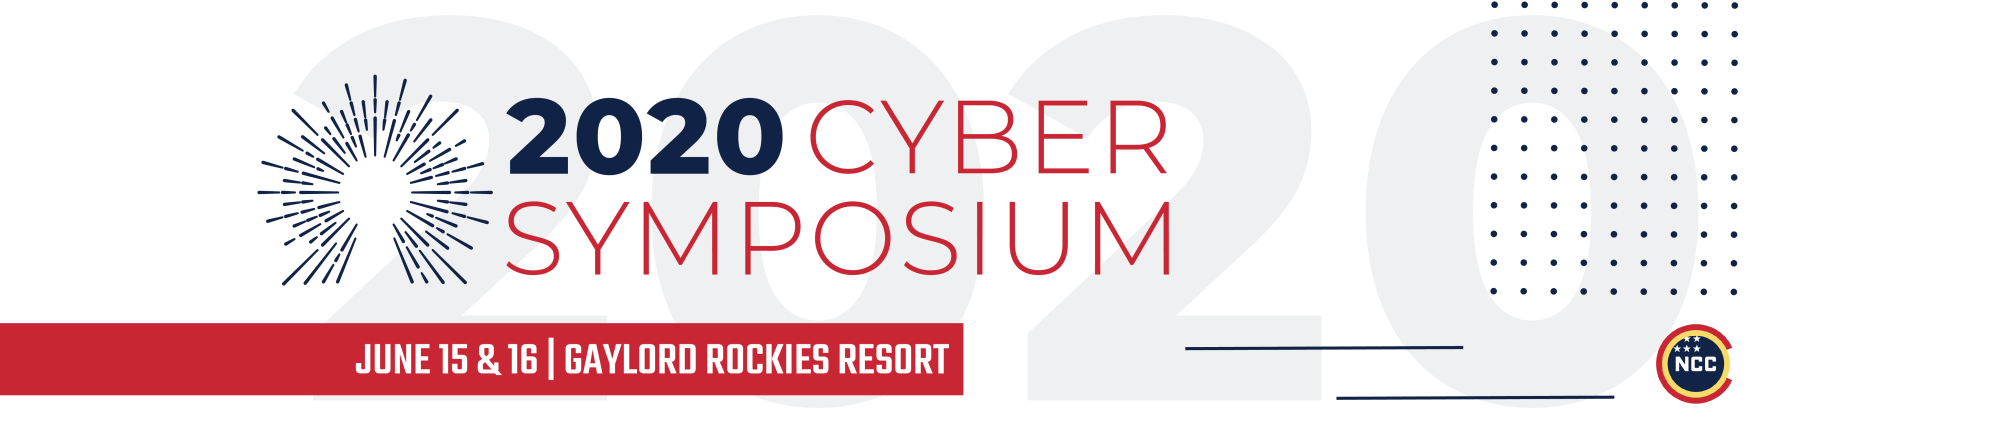 National Cybersecurity Center Cyber Symposium